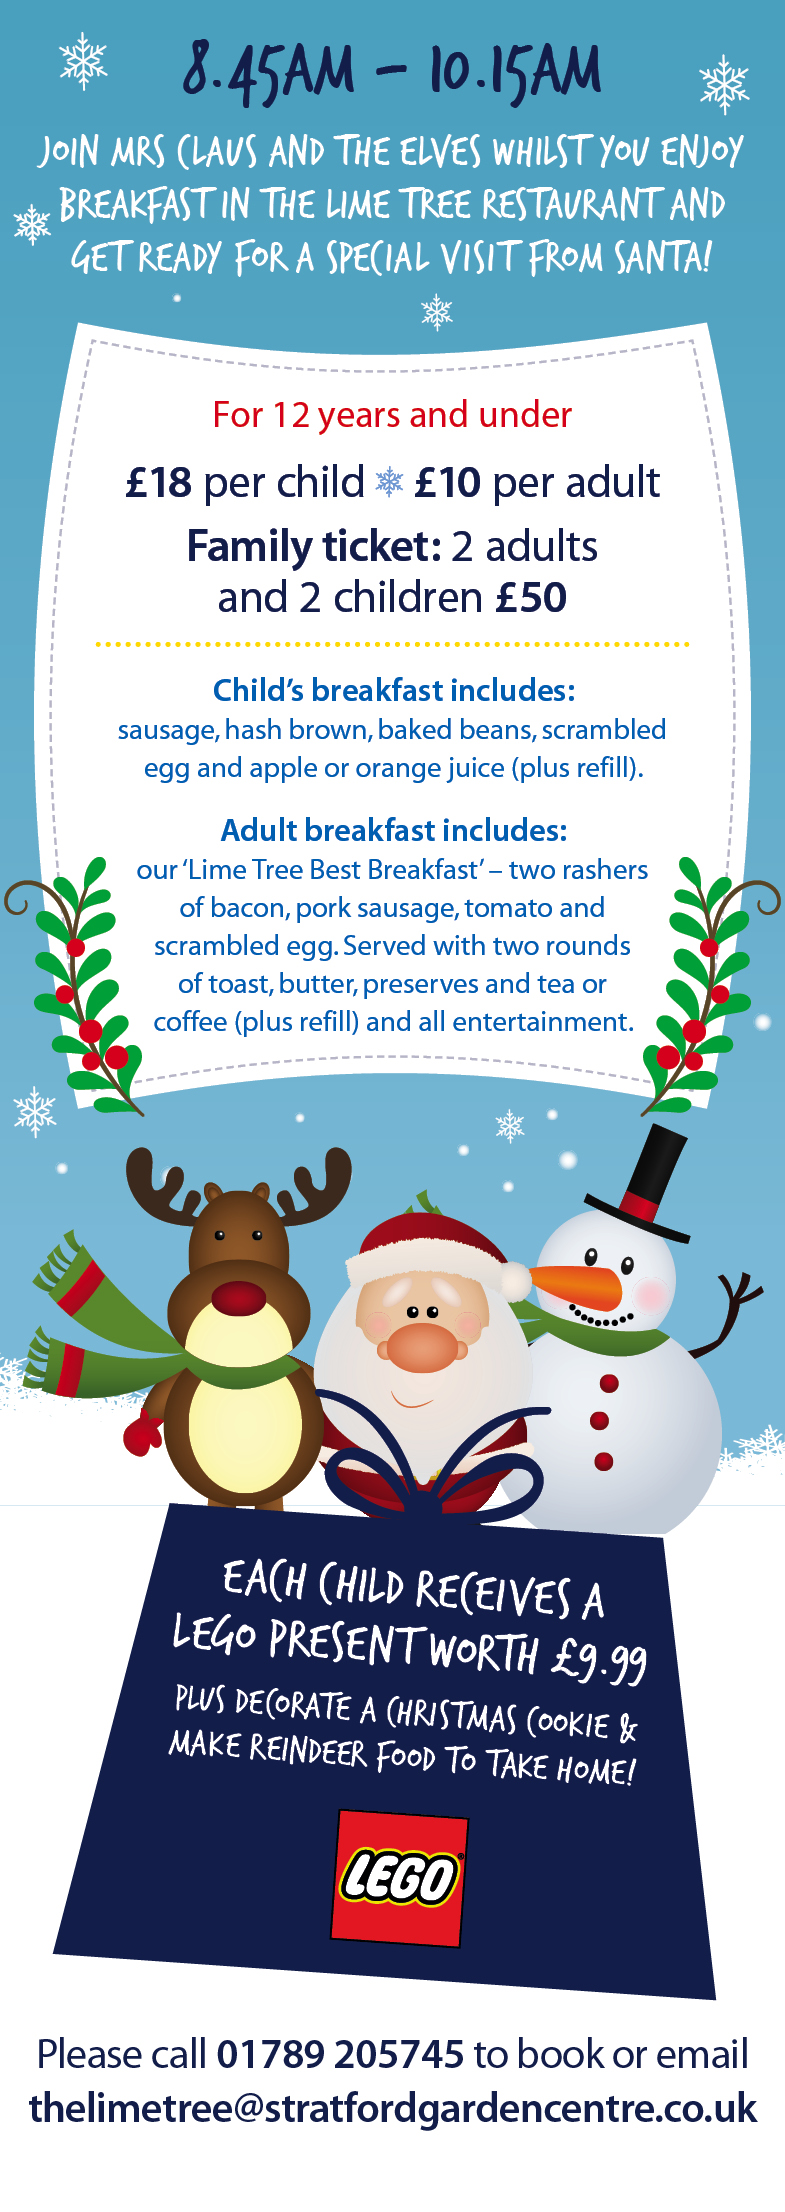 breakfast-with-santa-event-stratford-garden-centre-2